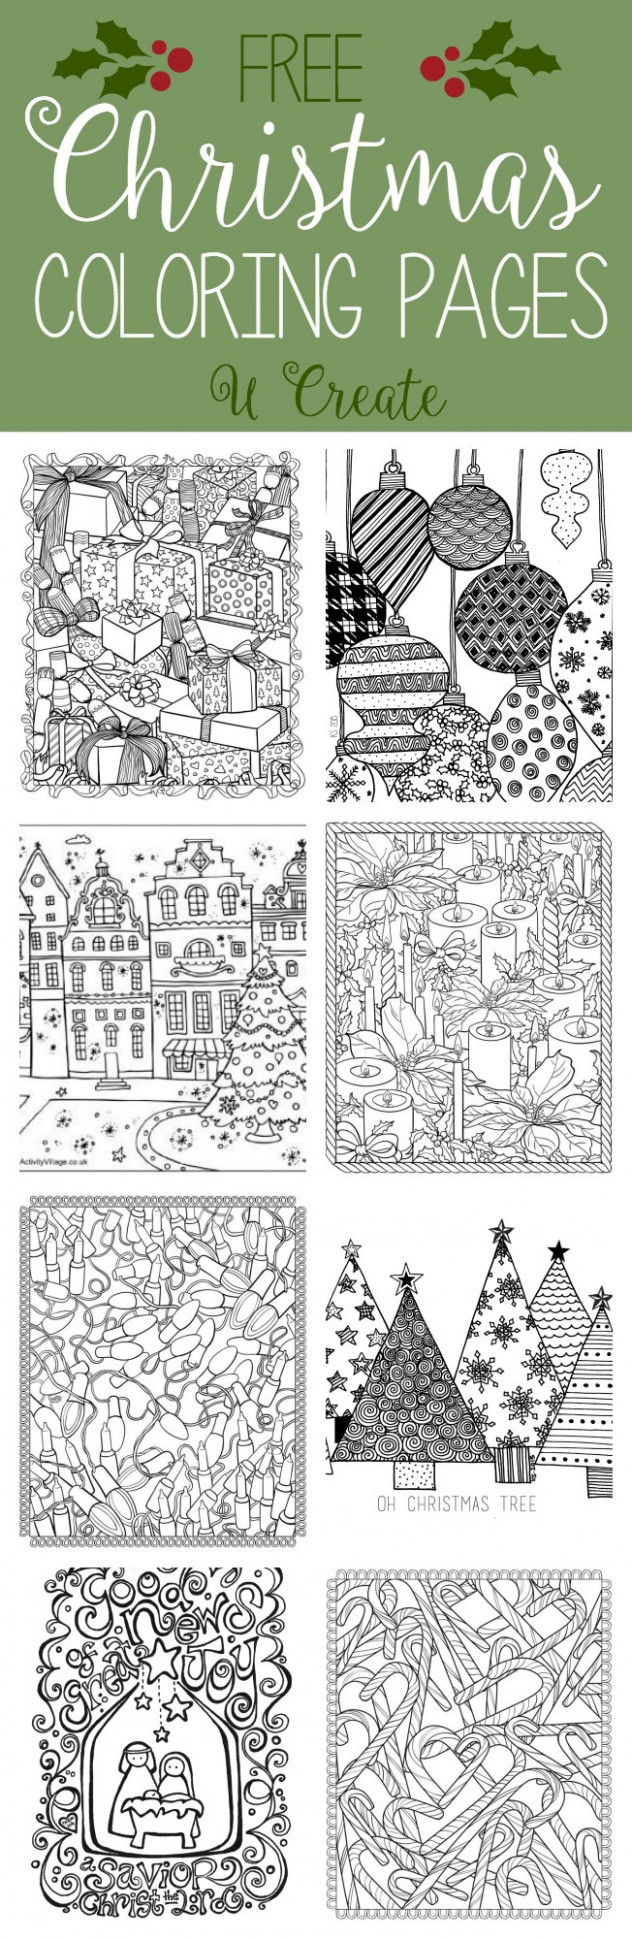 Free Christmas Adult Coloring Pages – U Create – Christmas Coloring Pages For Adults Free Printable